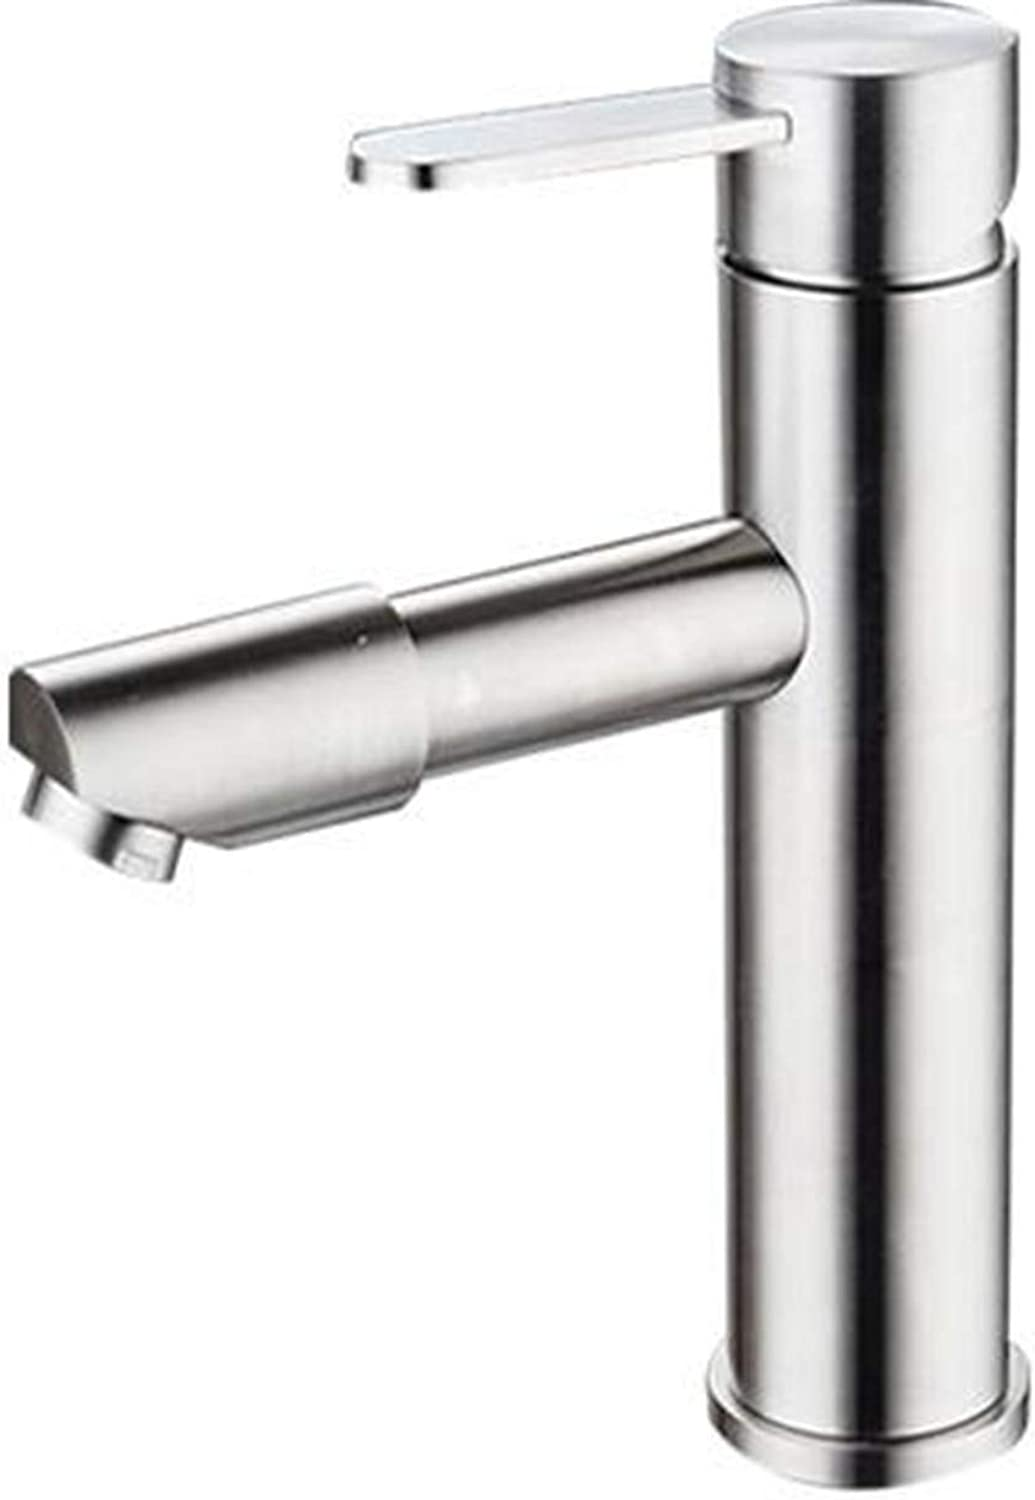 LYBSD Bathroom Sink Taps Hot and cold basin faucet bathroom fashion sink kitchen A9